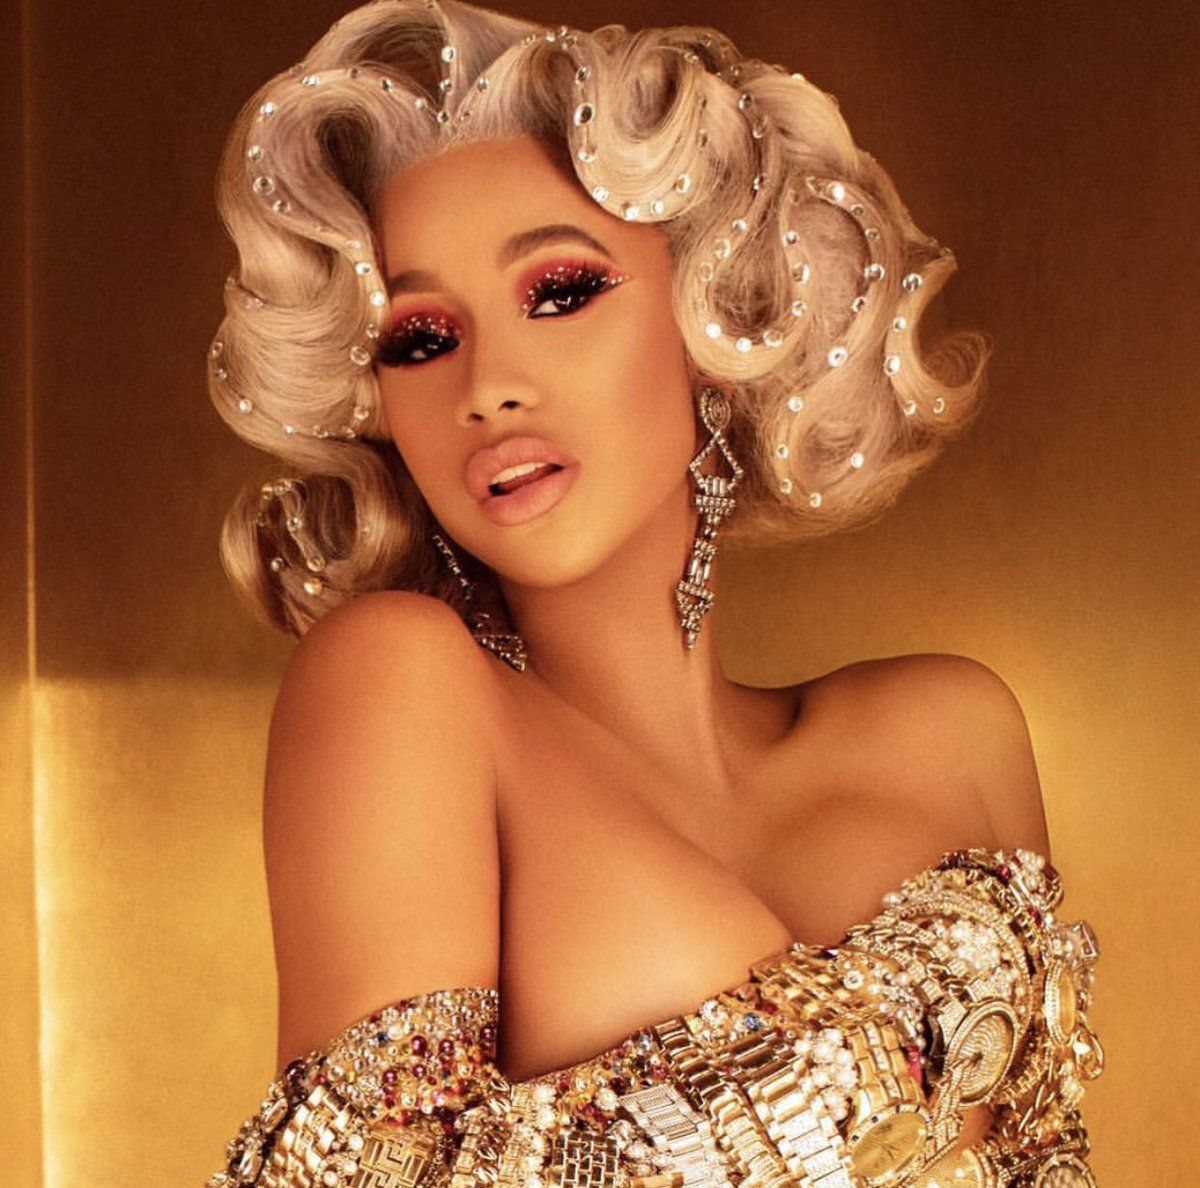 Cardi B Confirms She Married Offset In September: Cardi B Confirms New Album For This Year